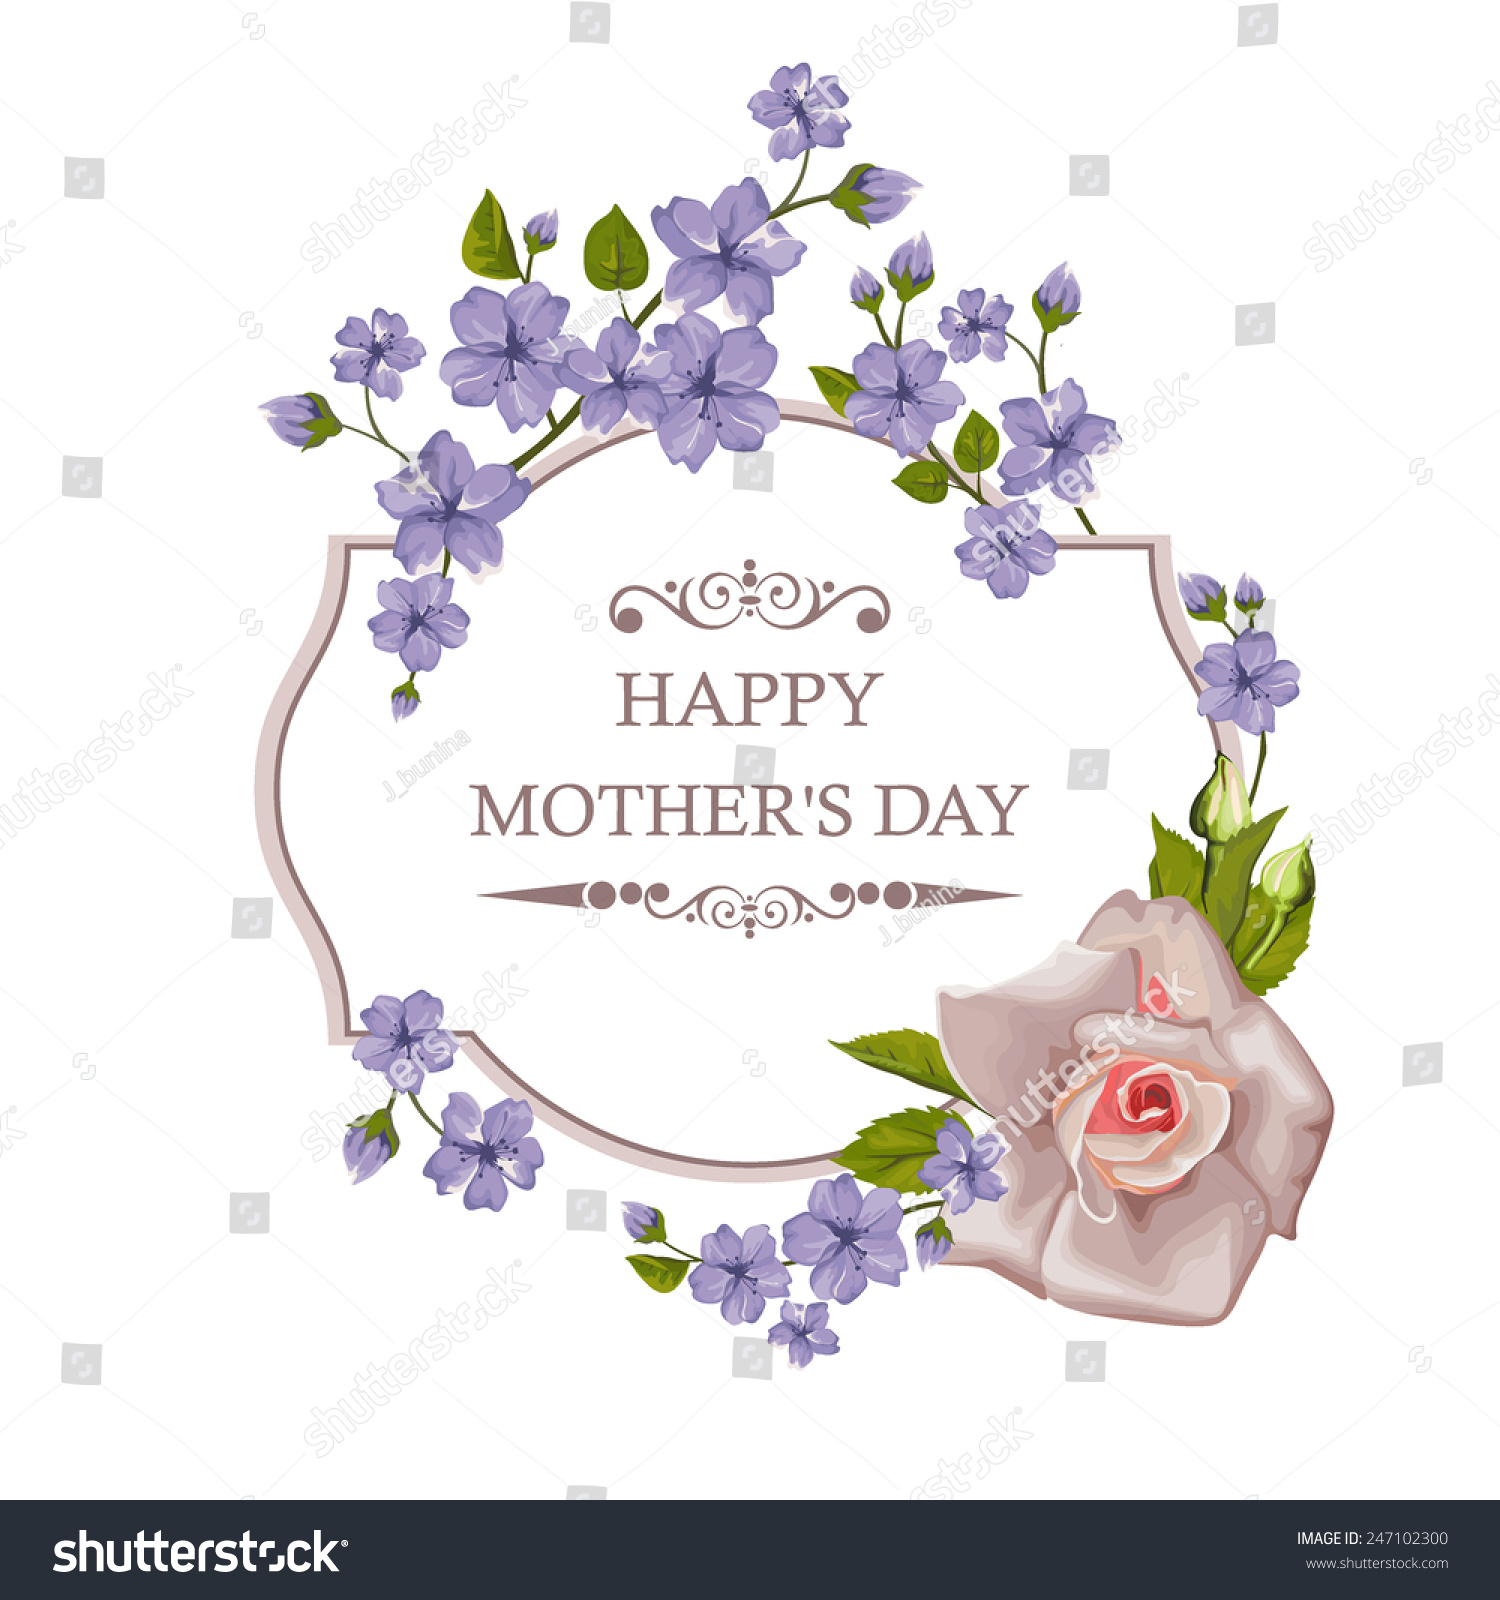 Peony flower isolated on white stock vector 368014568 shutterstock - Happy Mother S Day Floral Greeting Card With Rose Vector Illustration Perfect For Background Greeting